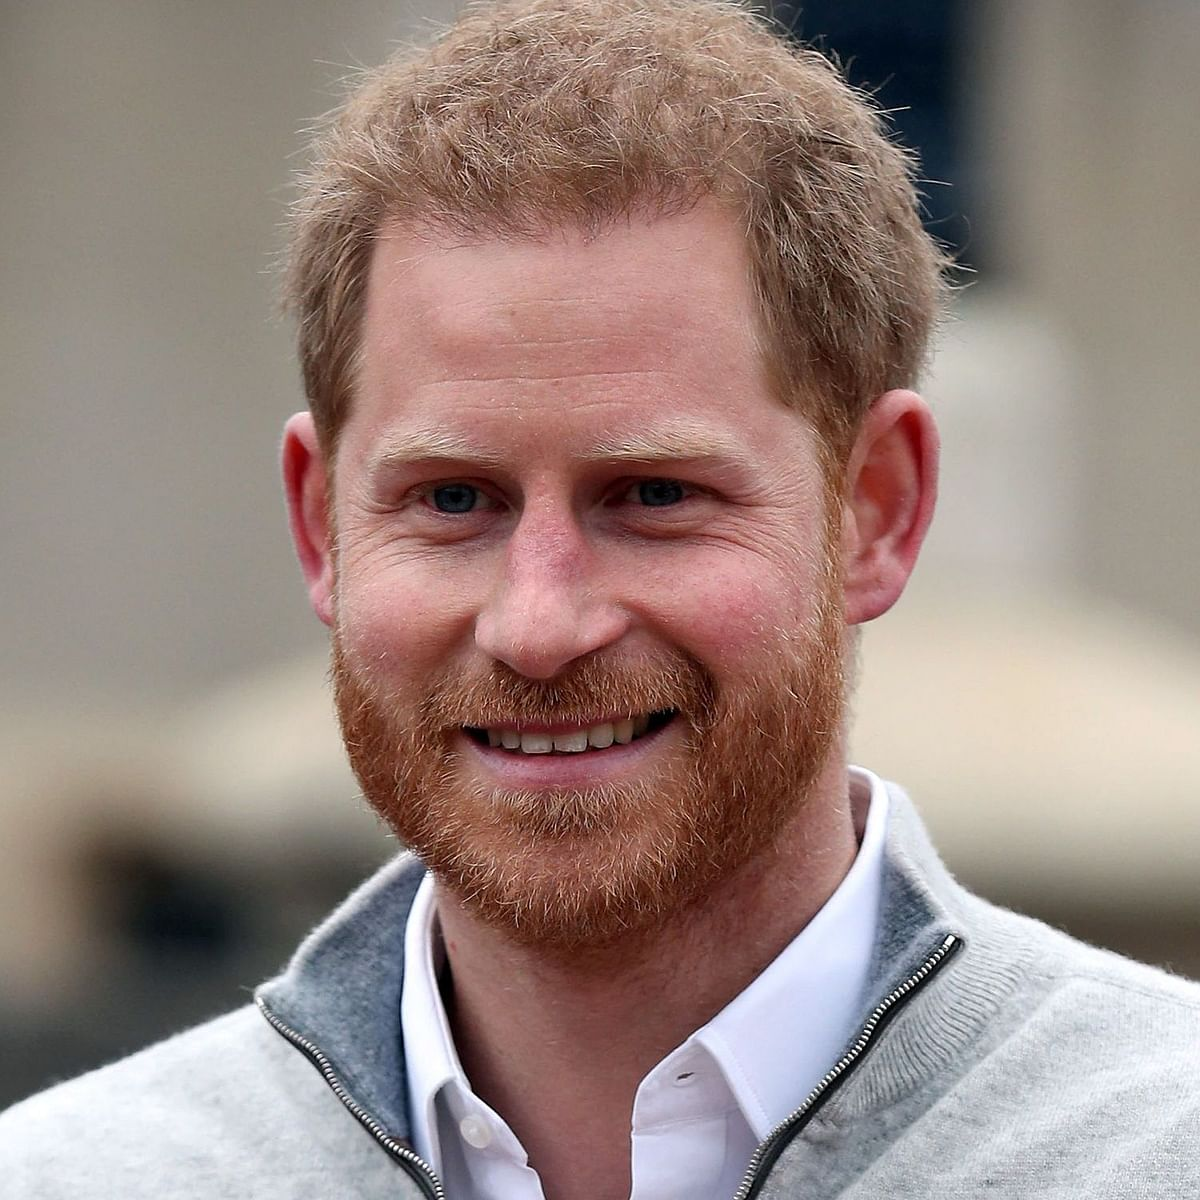 Prince Harry's new job title and it's unfortunate Japanese meaning